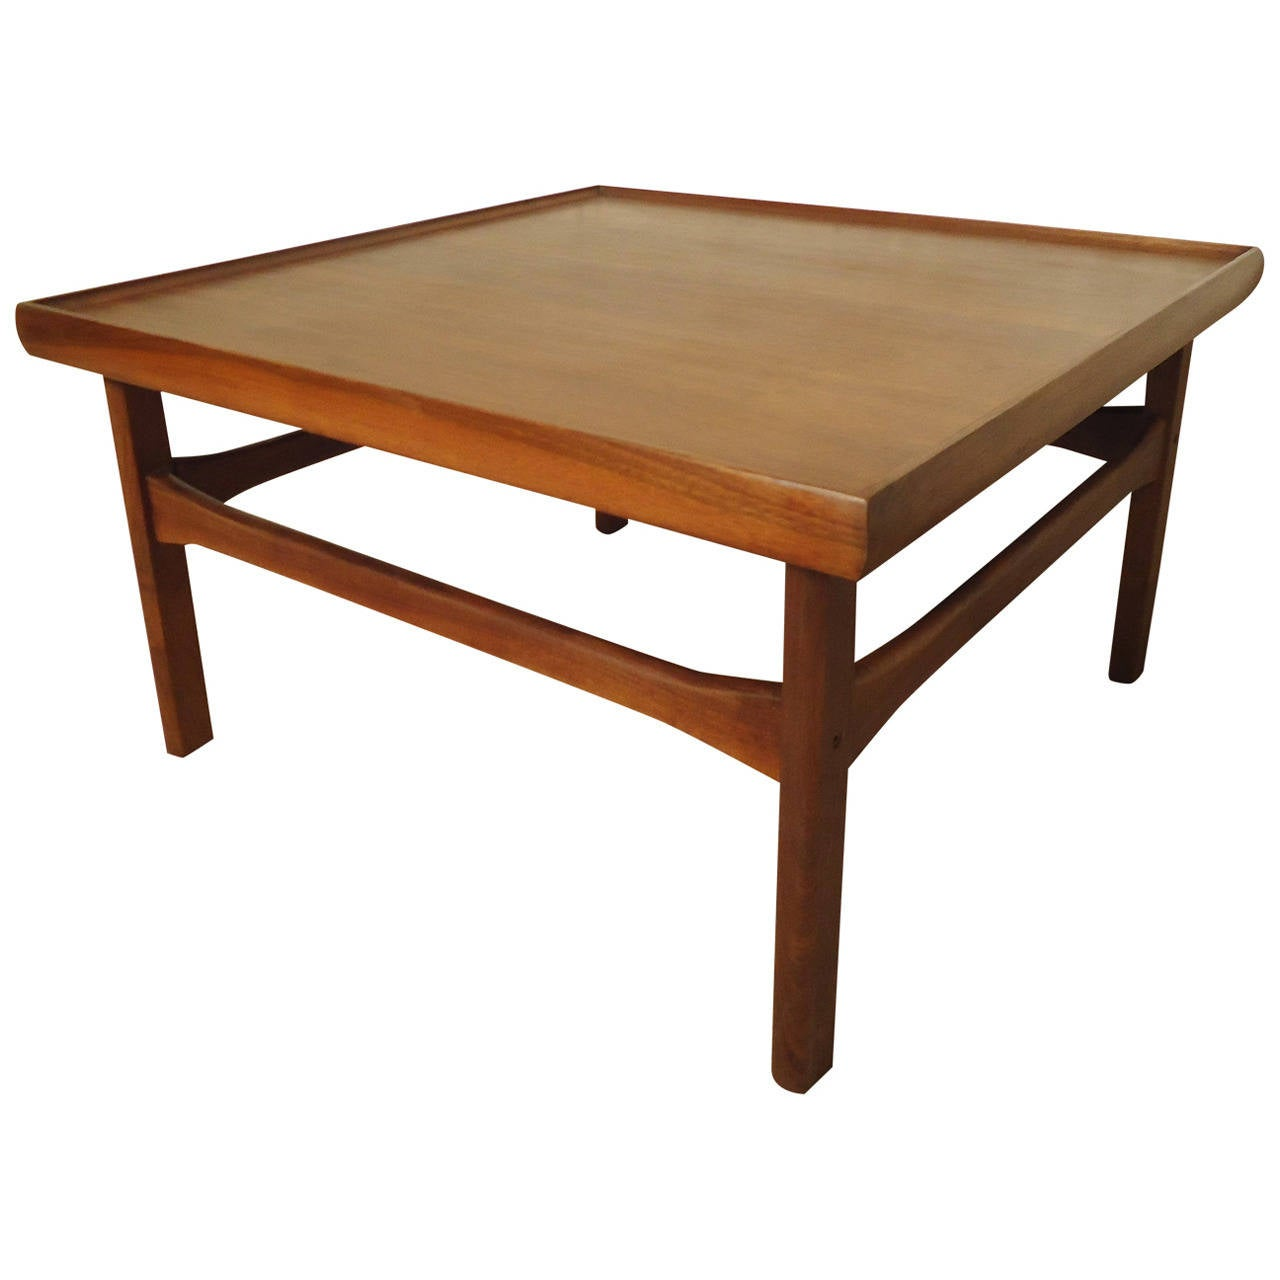 mid century modern square coffee table for sale at 1stdibs. Black Bedroom Furniture Sets. Home Design Ideas